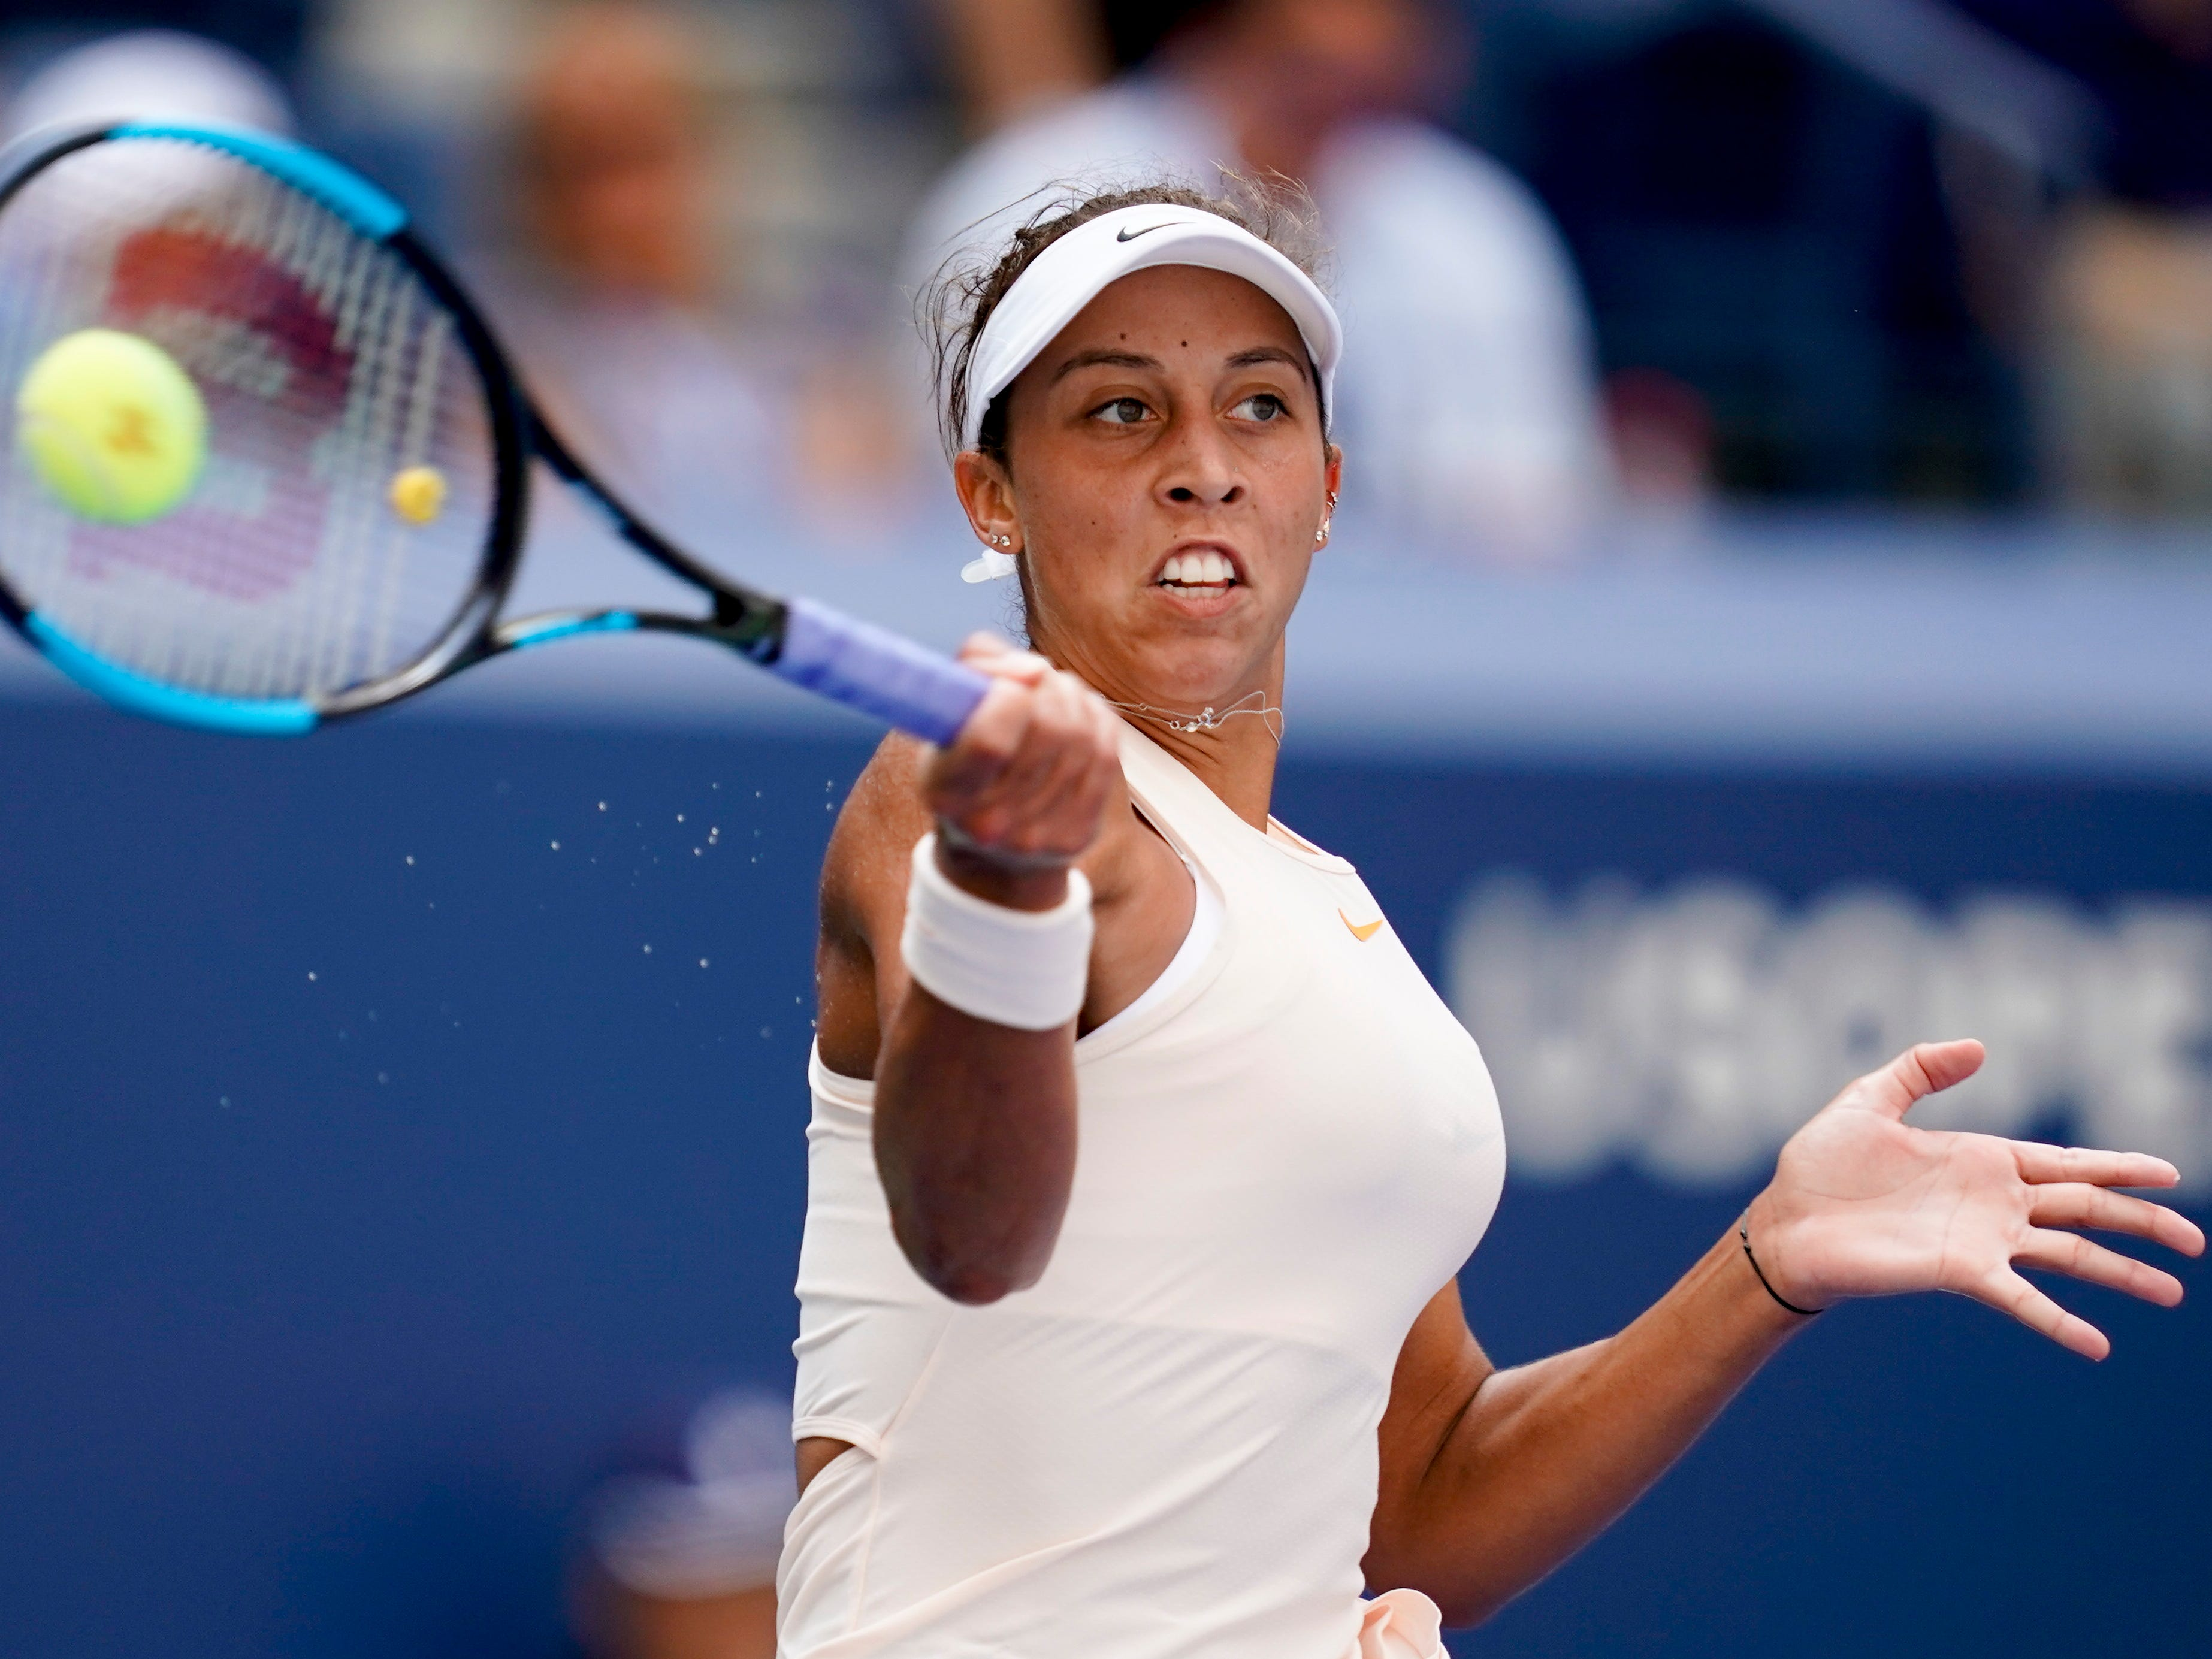 Madison Keys of the USA hits to Dominika Cibulkova of Slovakia in a fourth-round match on Day 8.